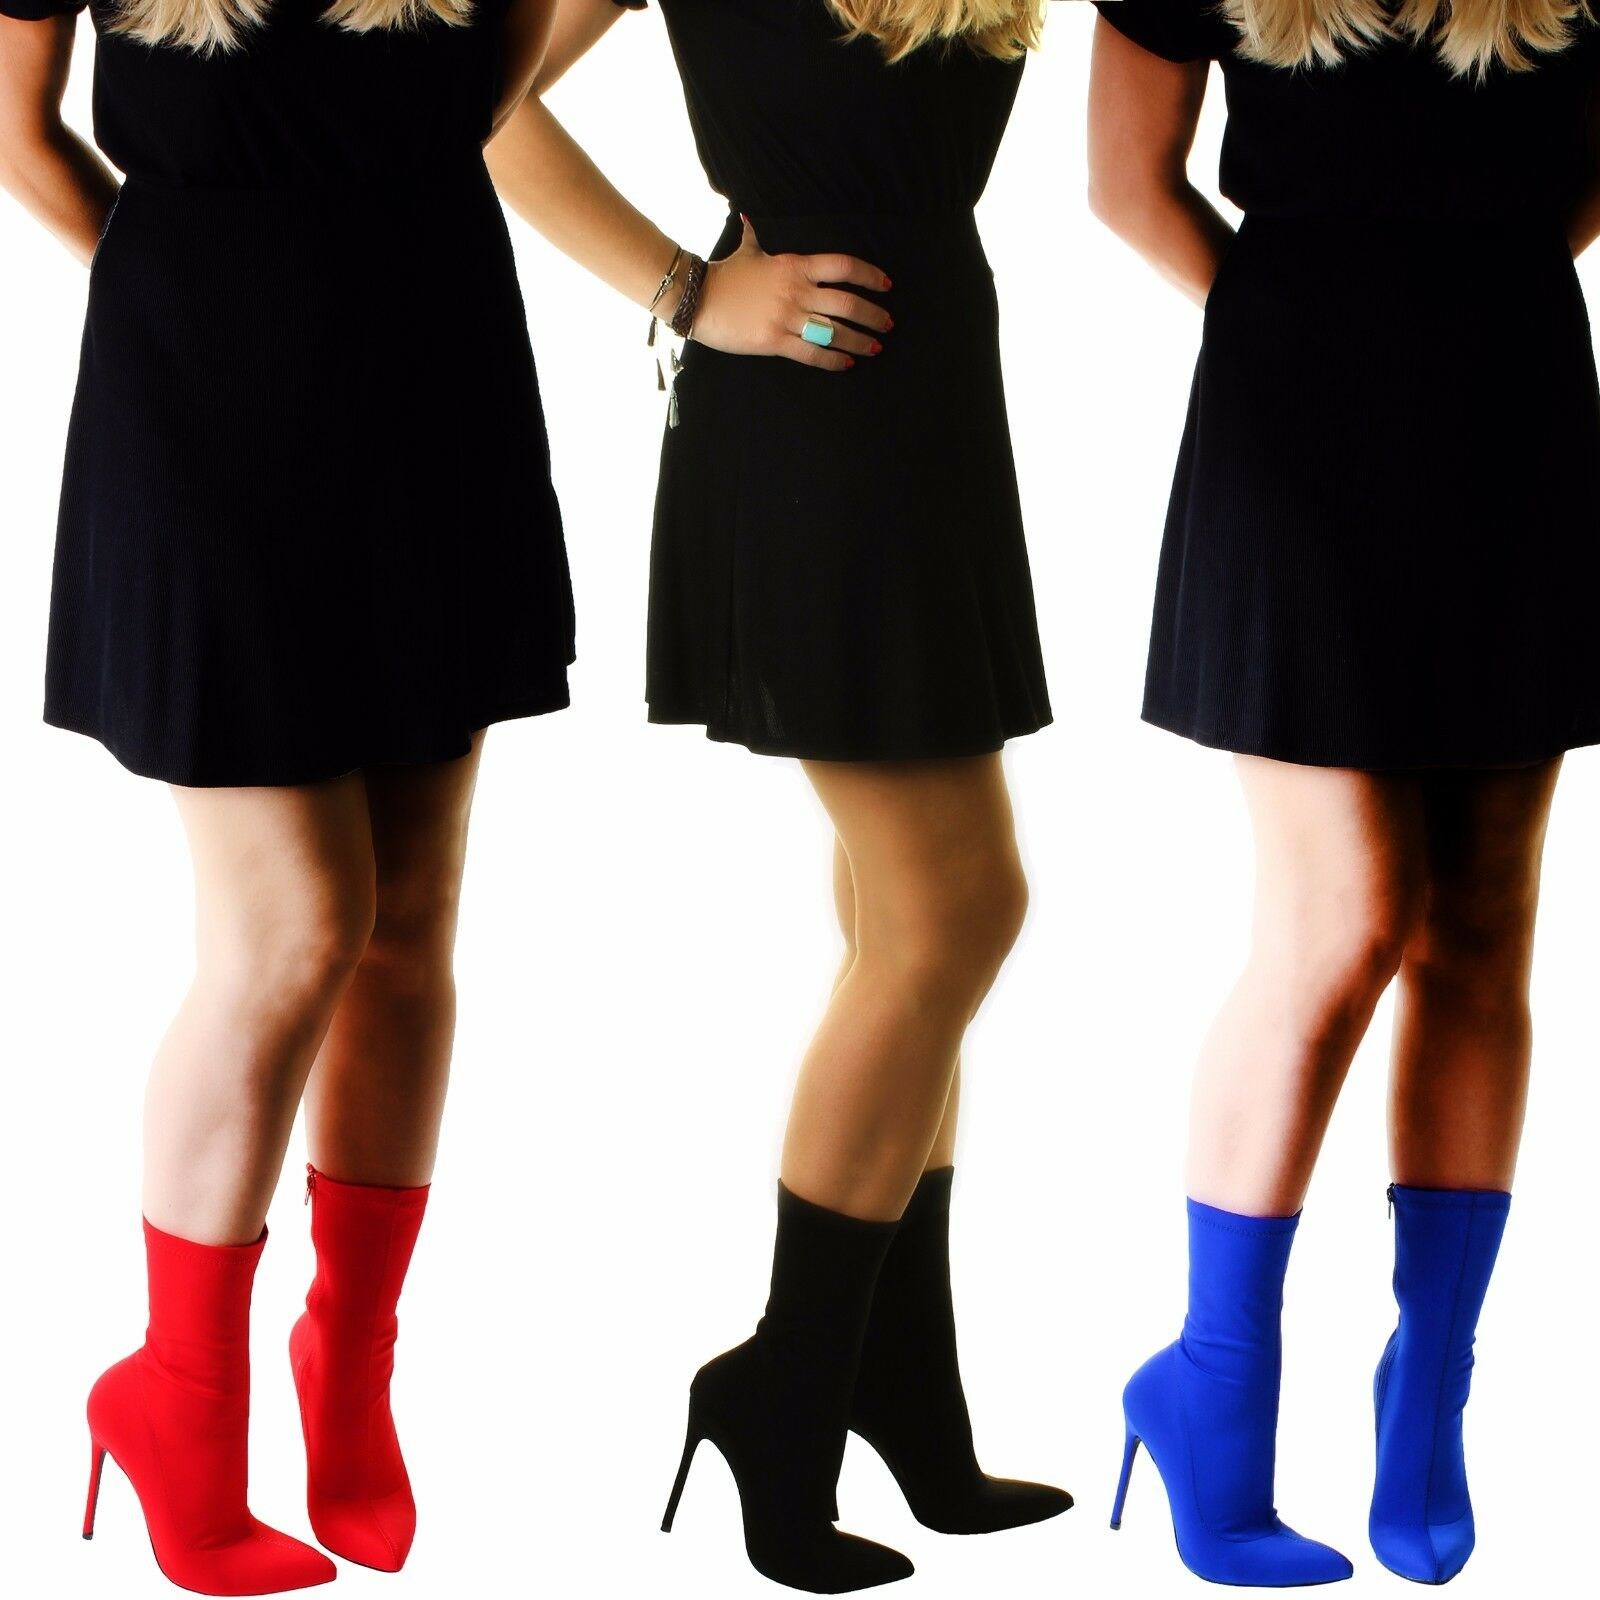 Ladies Black Red Blue Wide Slim LYCRA STRETCH Ankle Mid Calf High Stiletto Boots